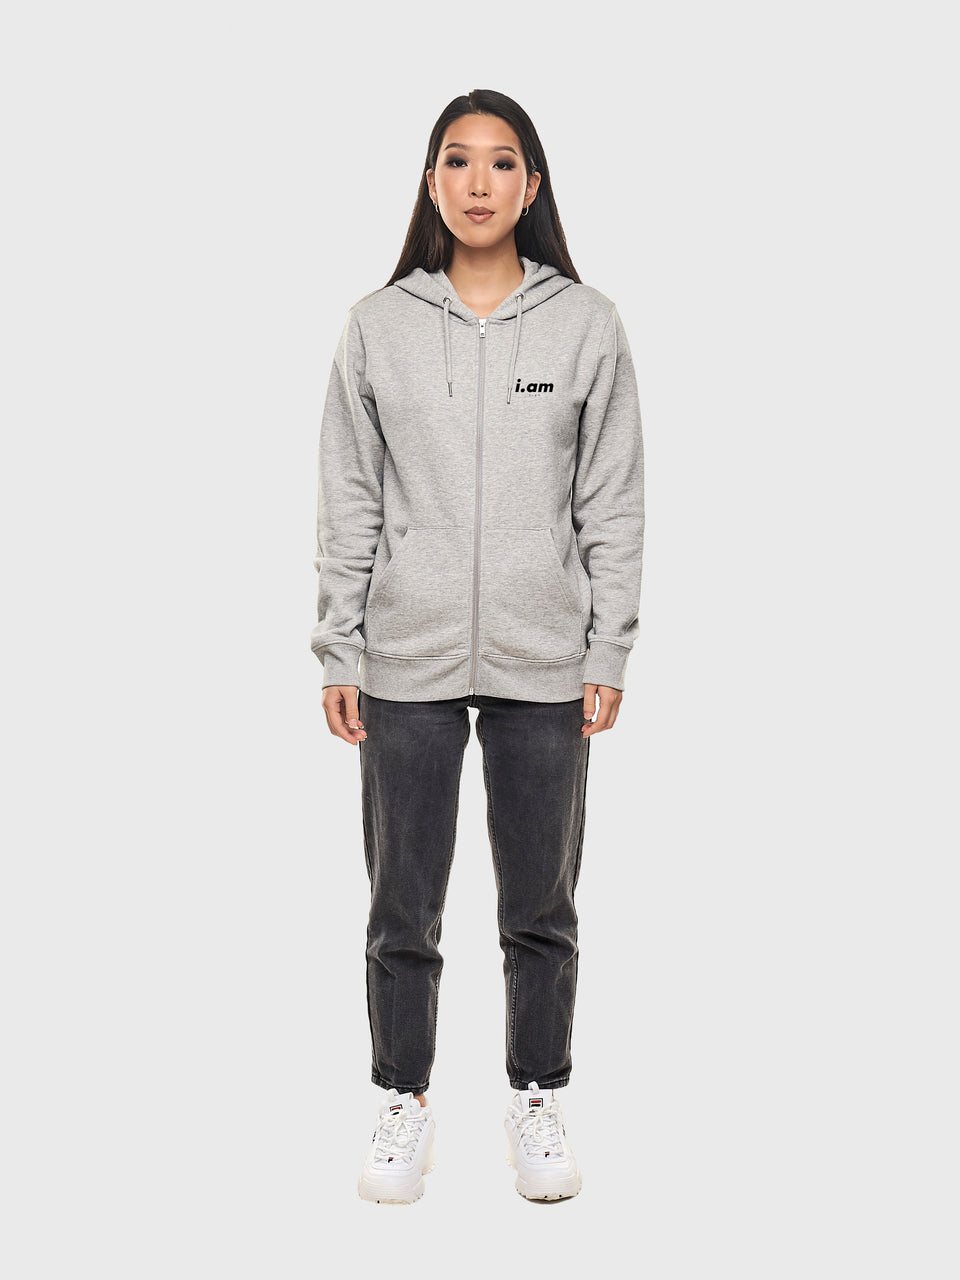 Power - Grey - Unisex zip up hoodie